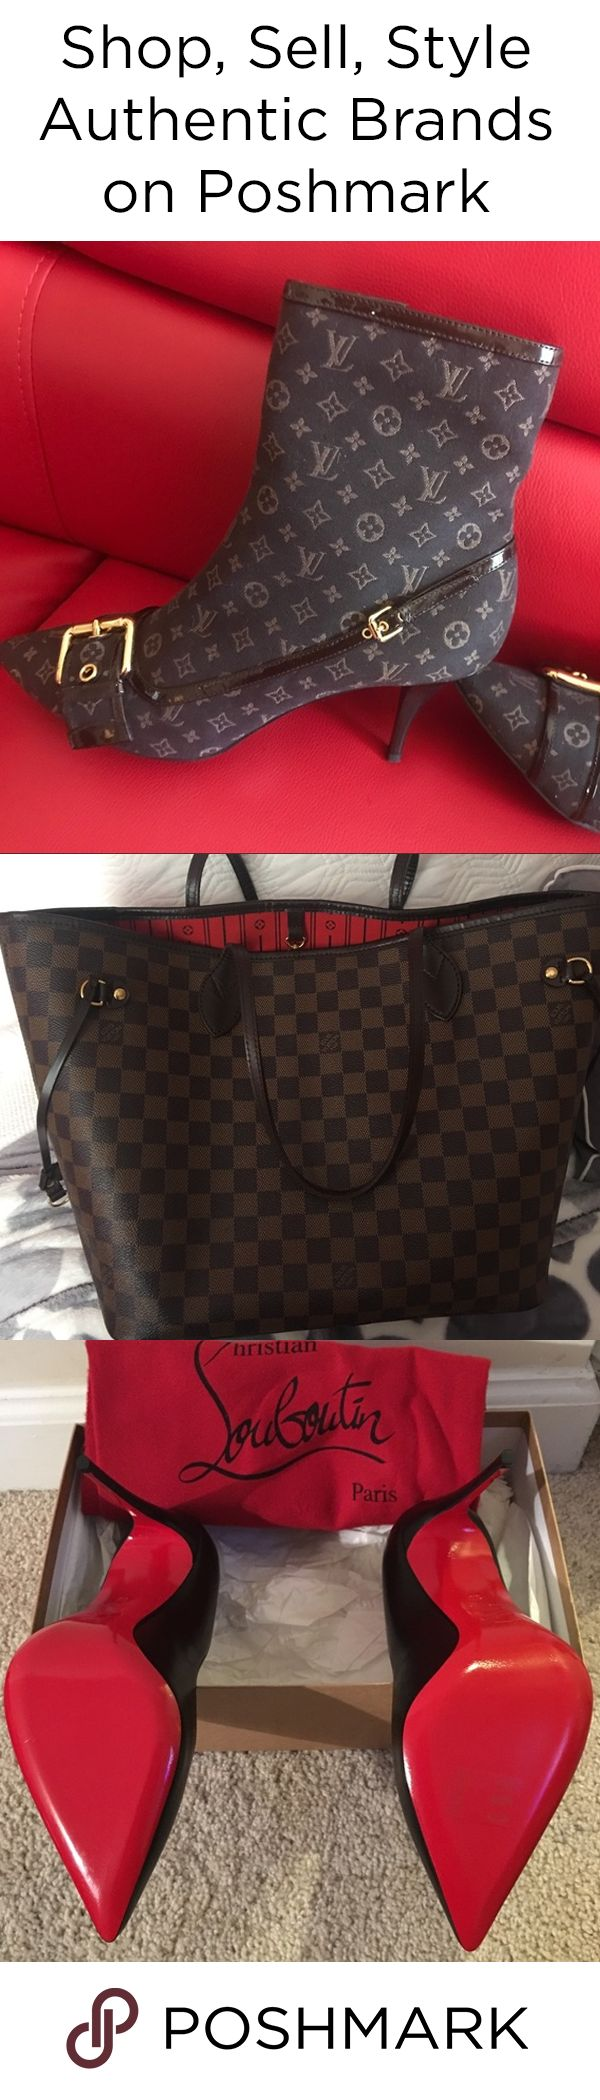 Shop, Sell, Style. Find Authentic LOUIS VUITTON & More on Poshmark. Install Free Now.